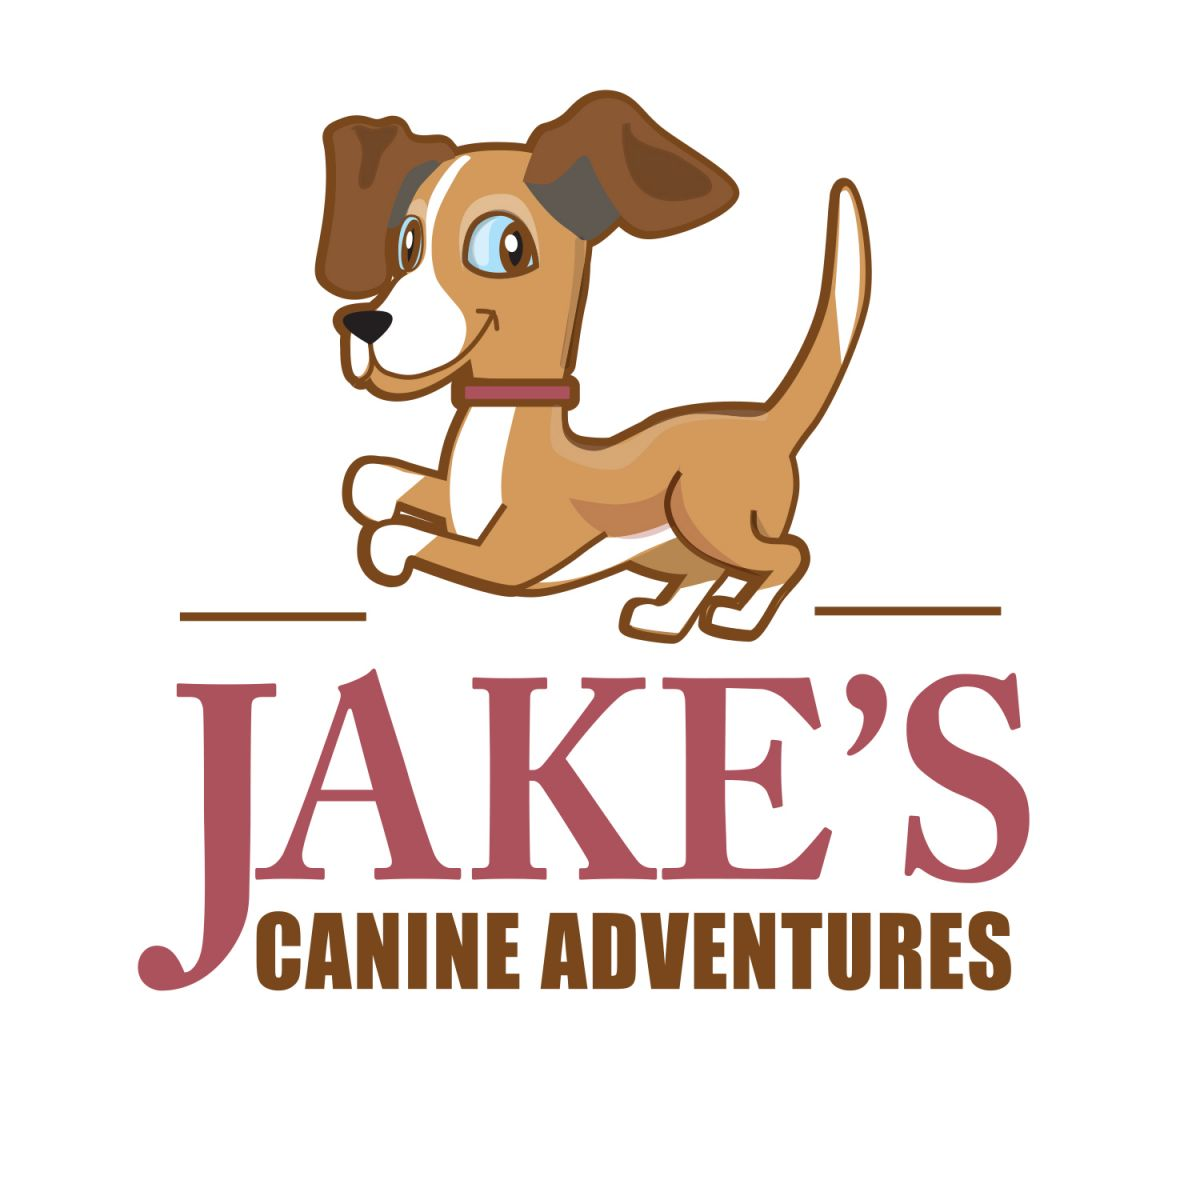 Jake's Canine Adventures